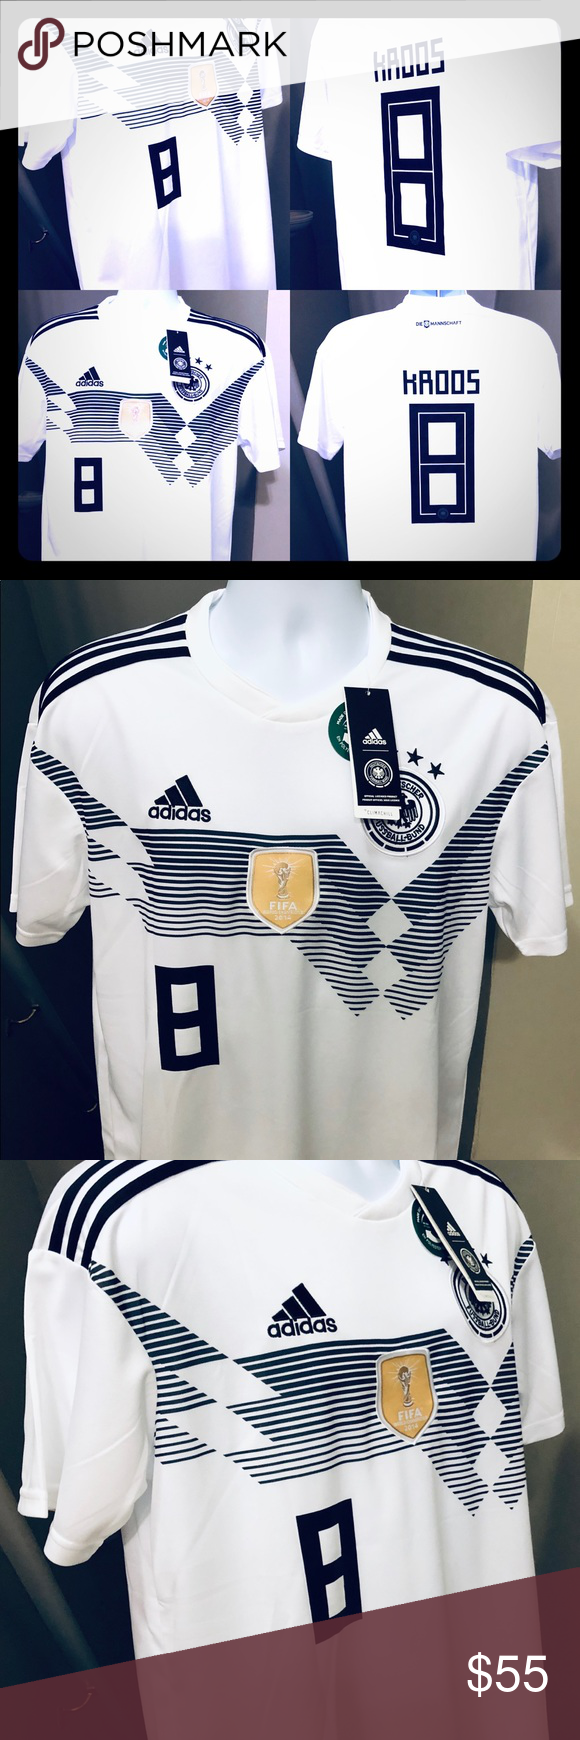 ca5b9e75 Toni Kroos #8 Germany Soccer Jersey World Cup 2018 Germany National Soccer  Team • Futbol Soccer Jersey Football 2018 Home Germany Soccer Jersey Toni  Kroos ...